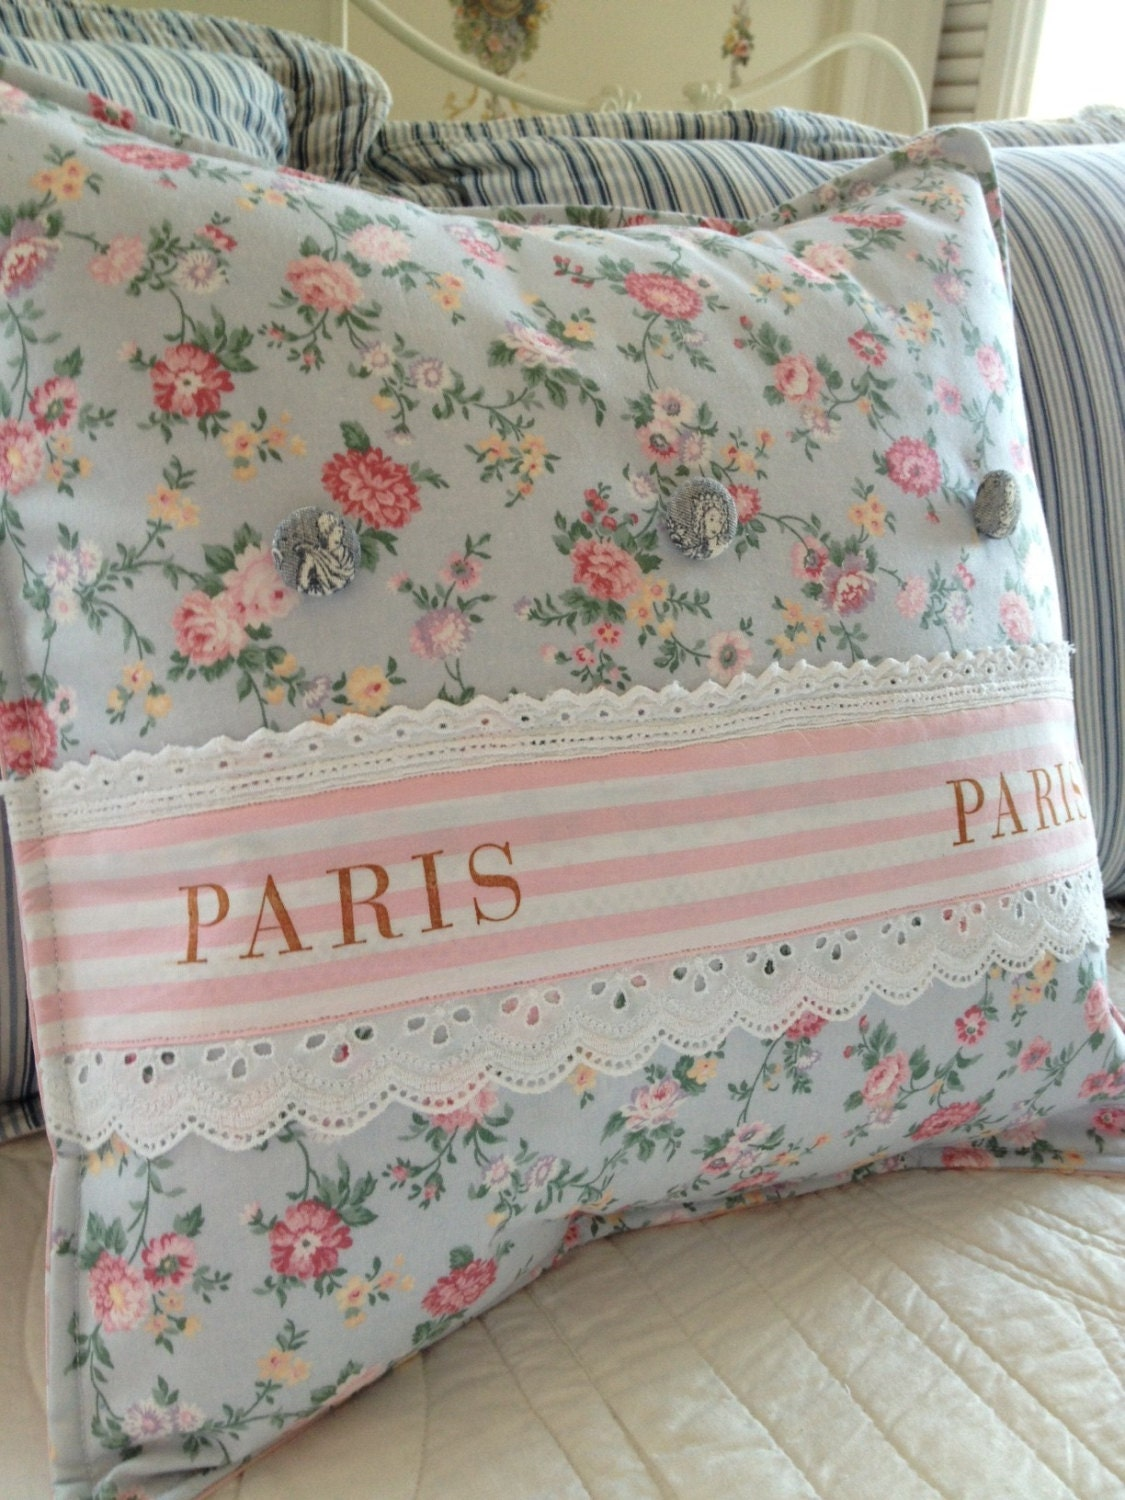 Shabby Chic Pillow Images : French Country Pillow Cover Shabby Chic Pillow Cover Paris